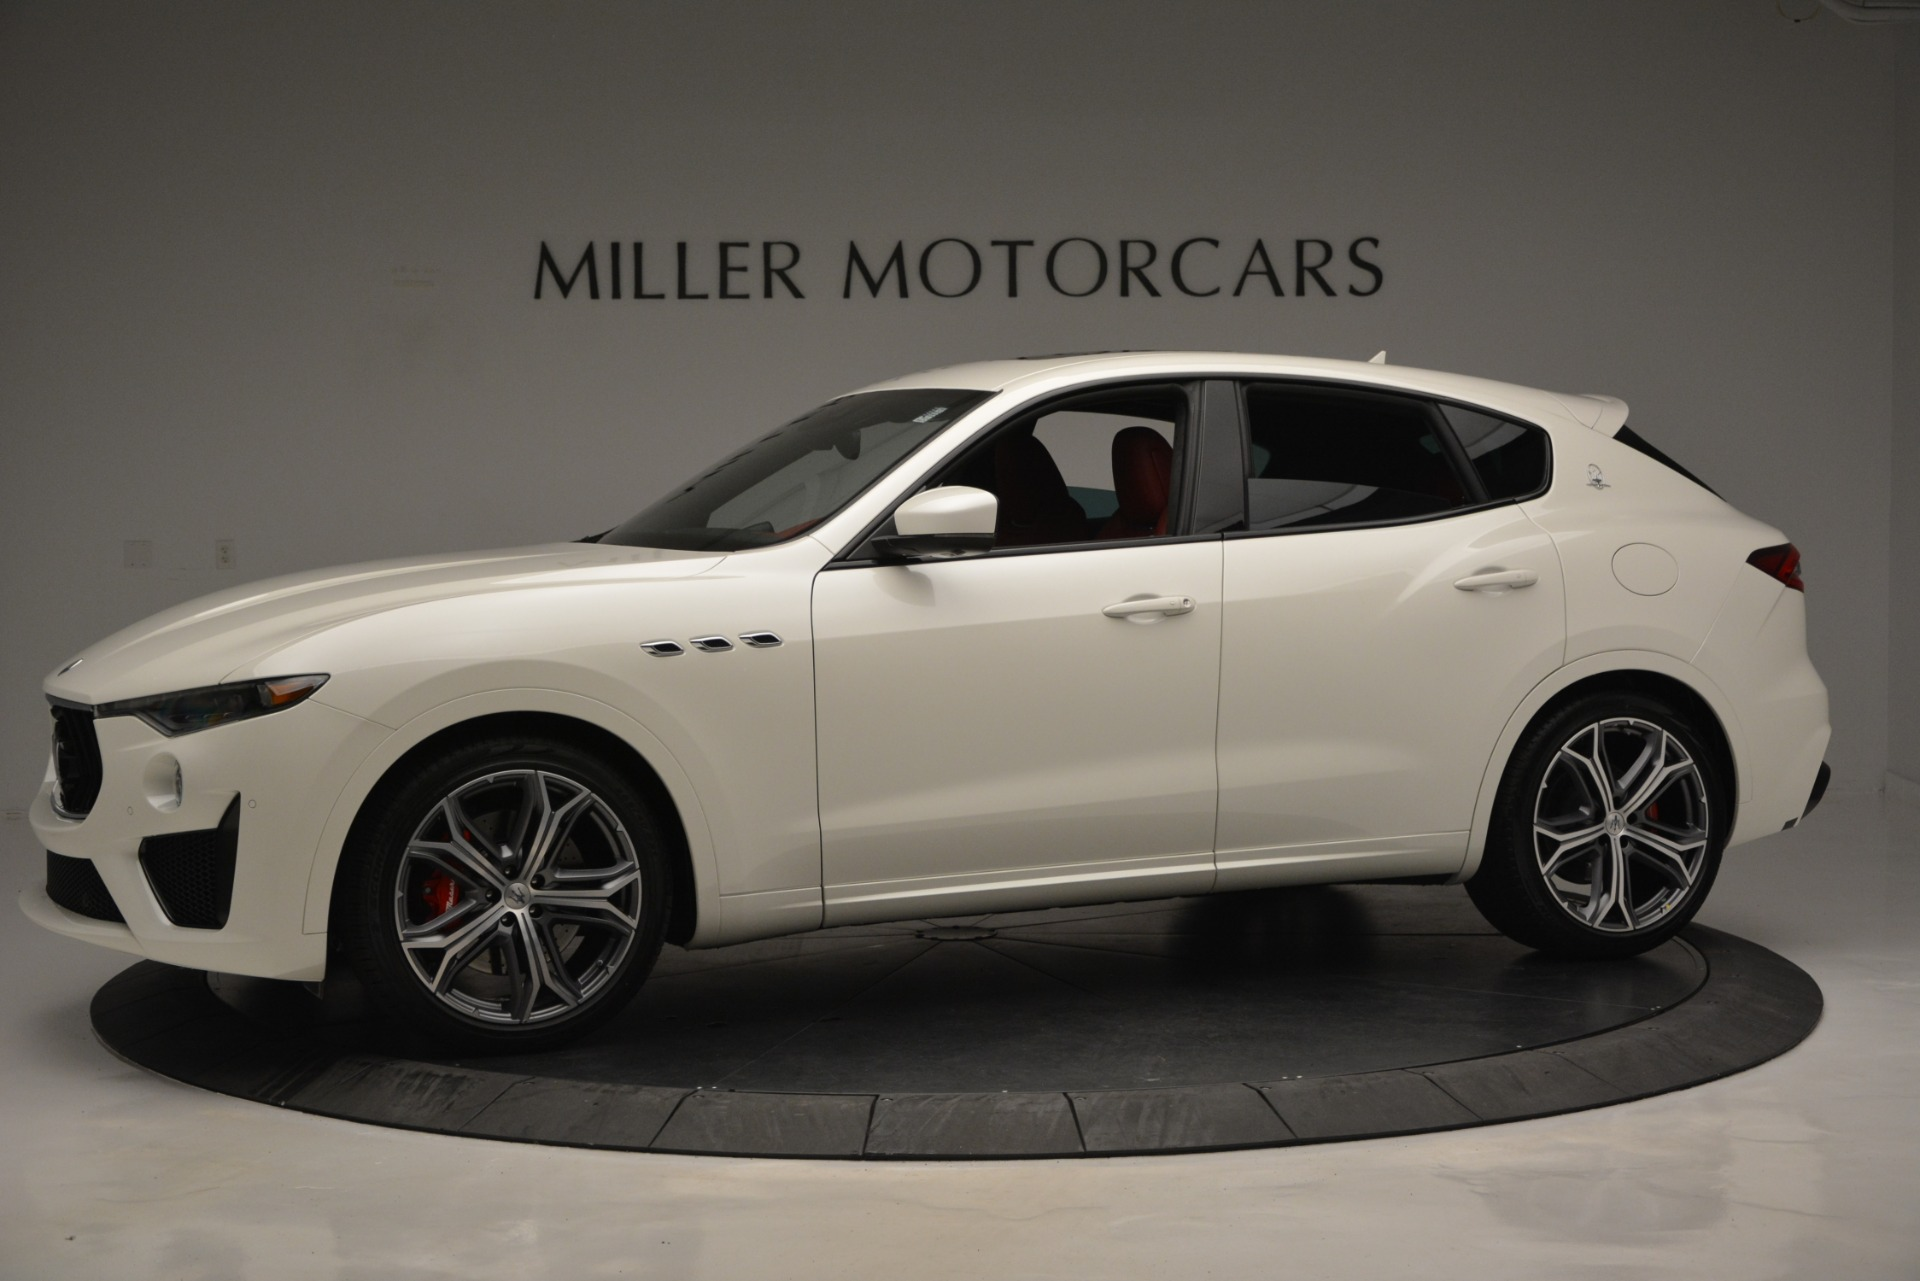 New 2019 Maserati Levante GTS For Sale In Westport, CT 2883_p3